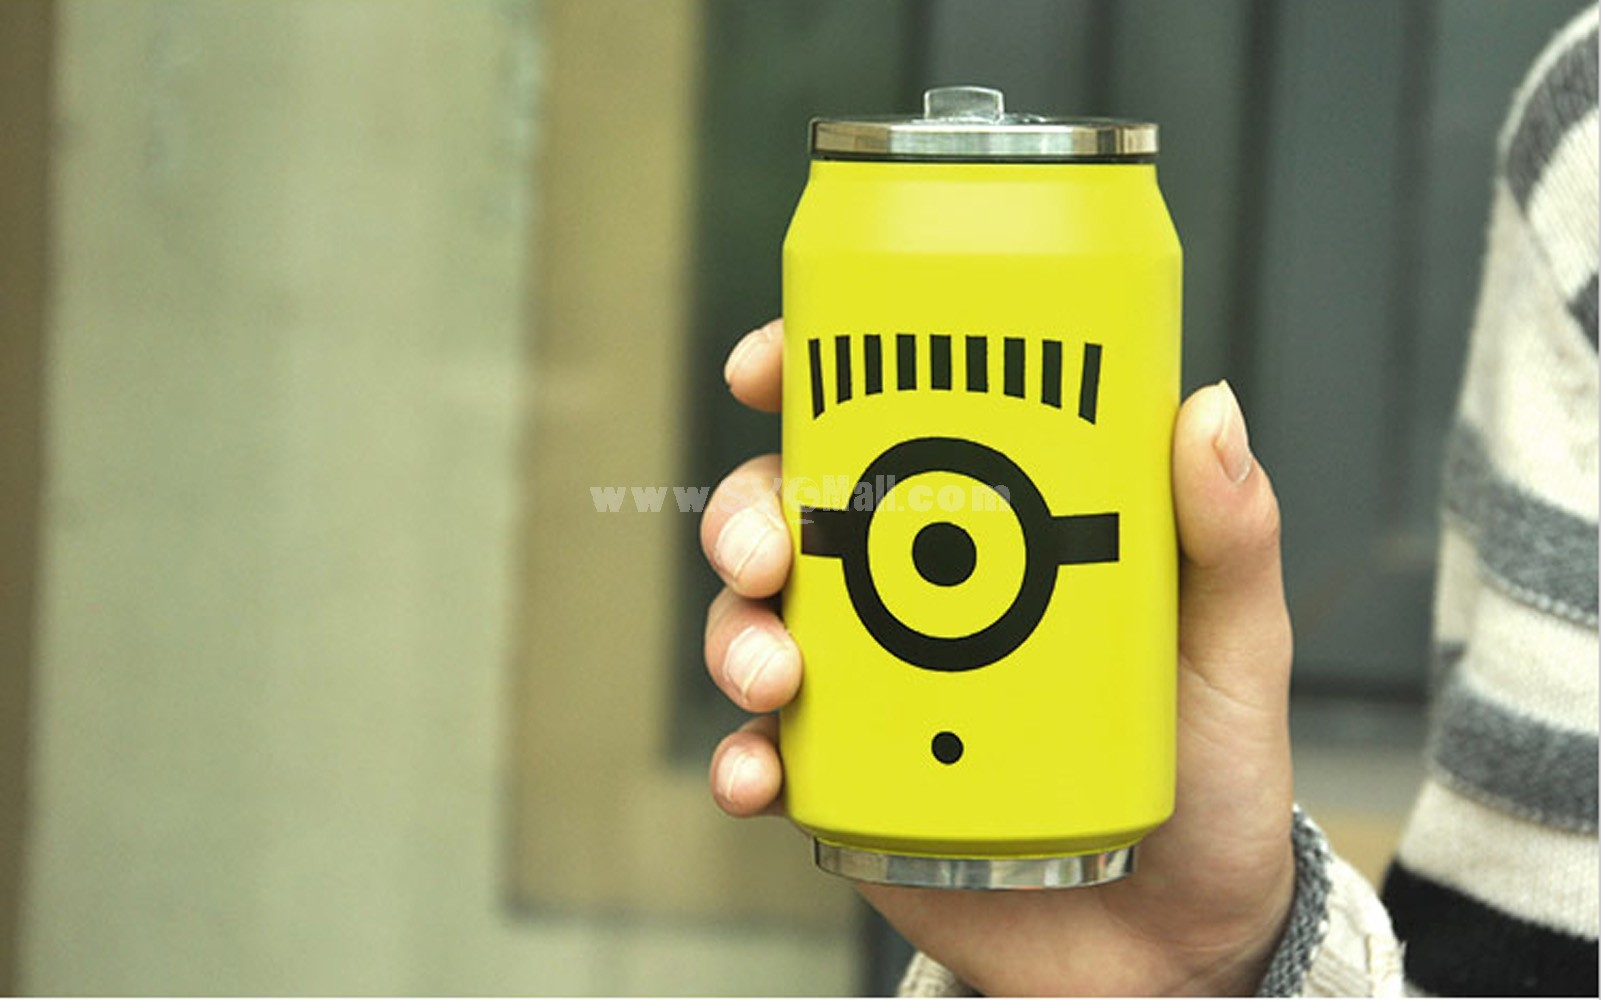 Deipicable Me Minions Stainless Steel Double-layer Thermos Cup Bottle